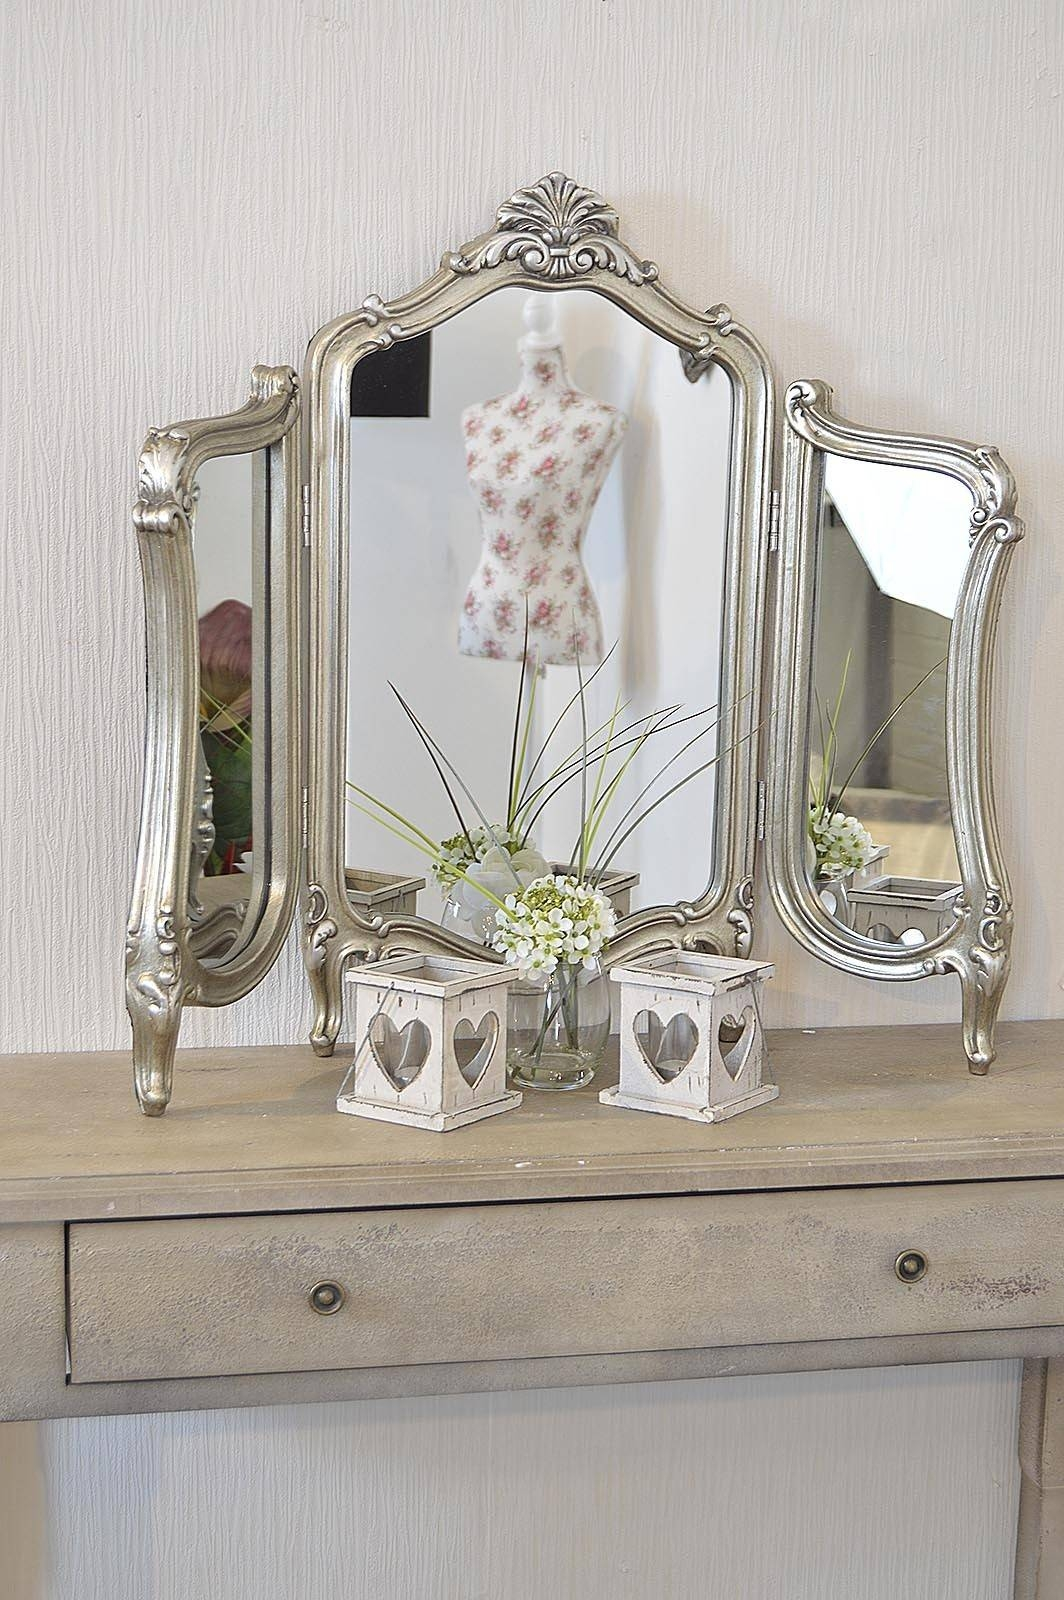 Dressing Table Mirrors | Best Decor Things with regard to Free Standing Mirrors for Dressing Table (Image 5 of 15)